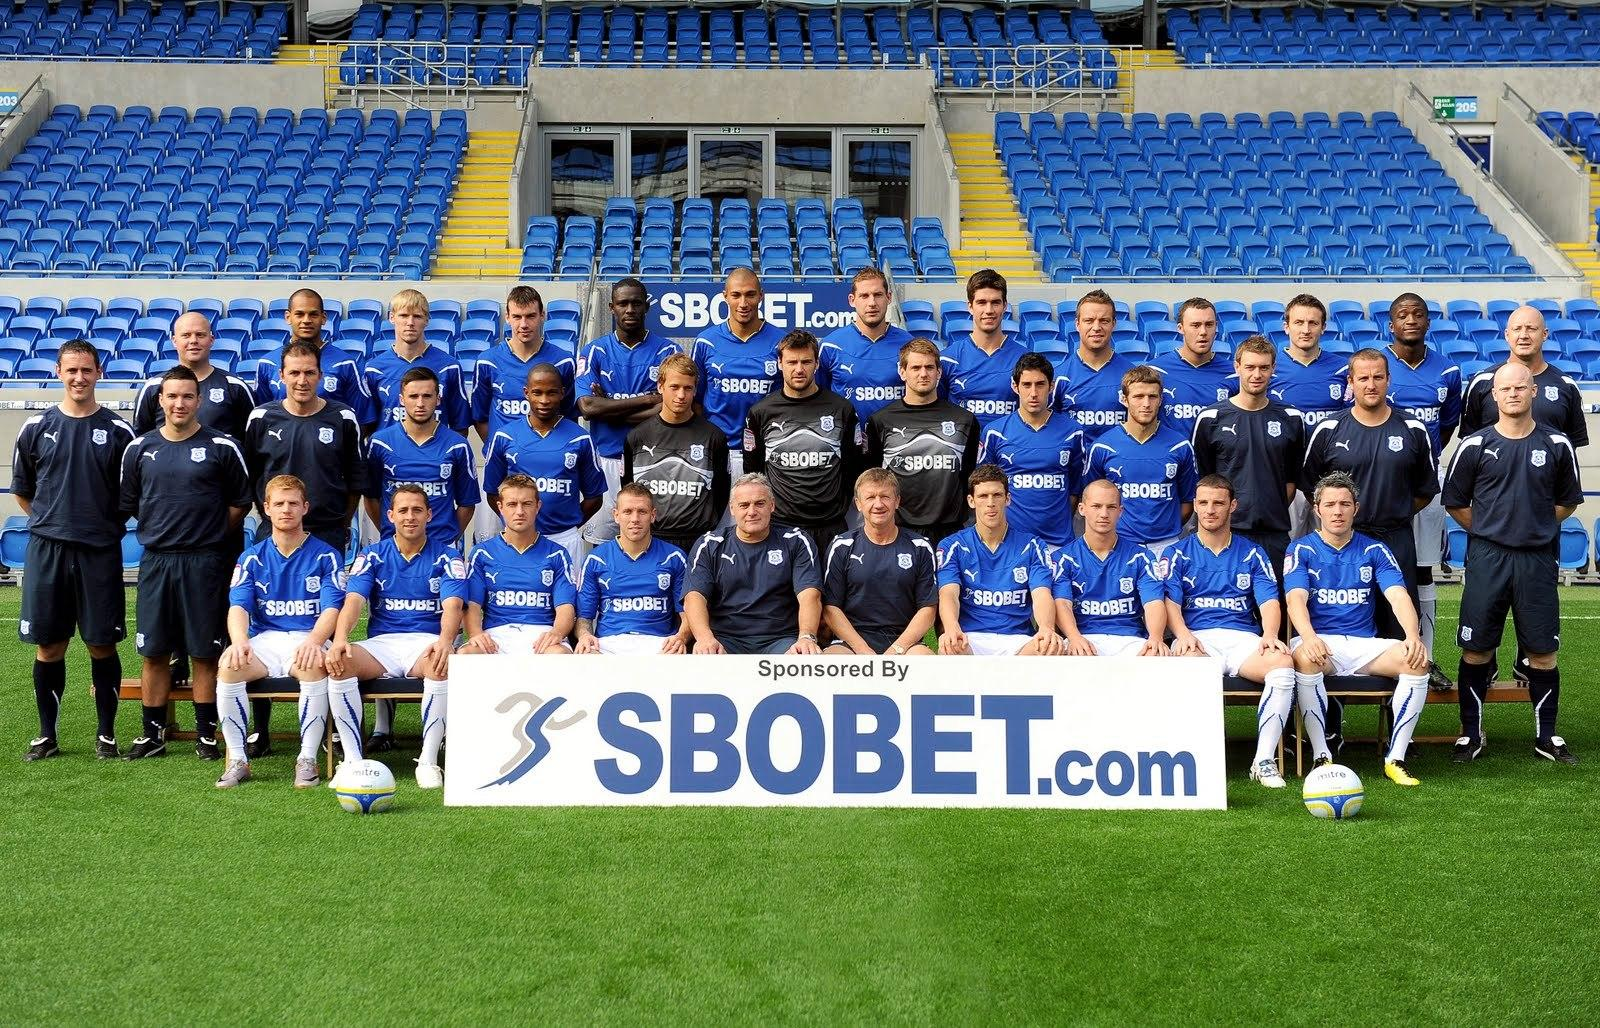 Cardiff City Football Club Team Picture #5672 - Ongur